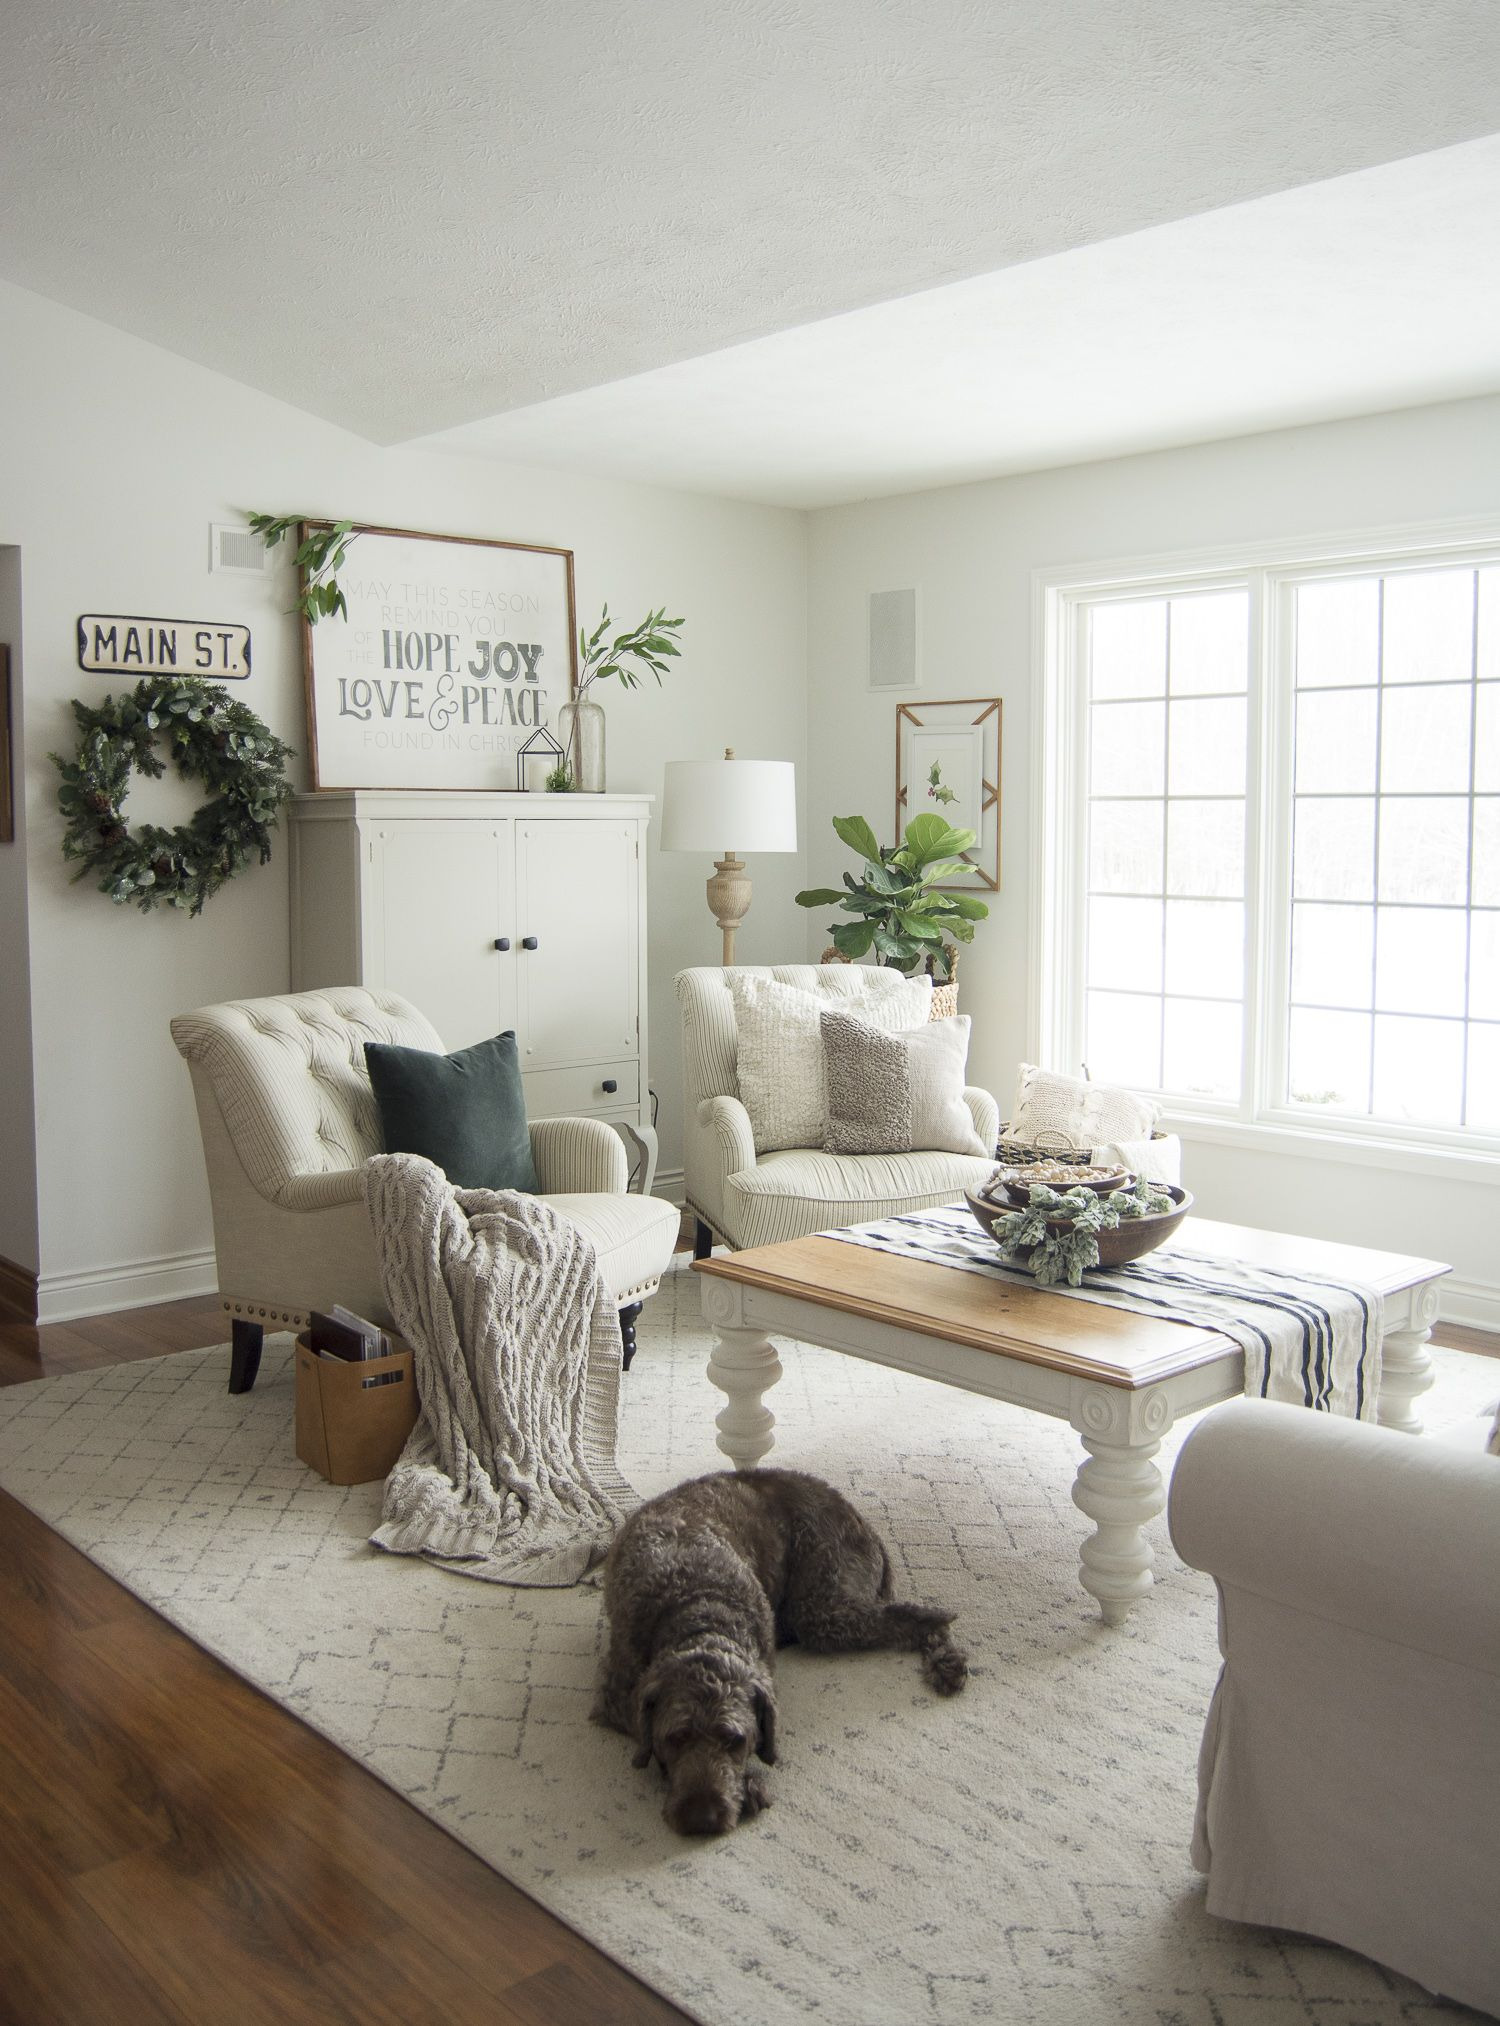 Are You Looking To Extend Your Christmas Decor Into Winter Today I M Sharing My Favorite Transit Winter Living Room Transitional Home Decor Transitional Decor #transitional #decorating #ideas #living #room